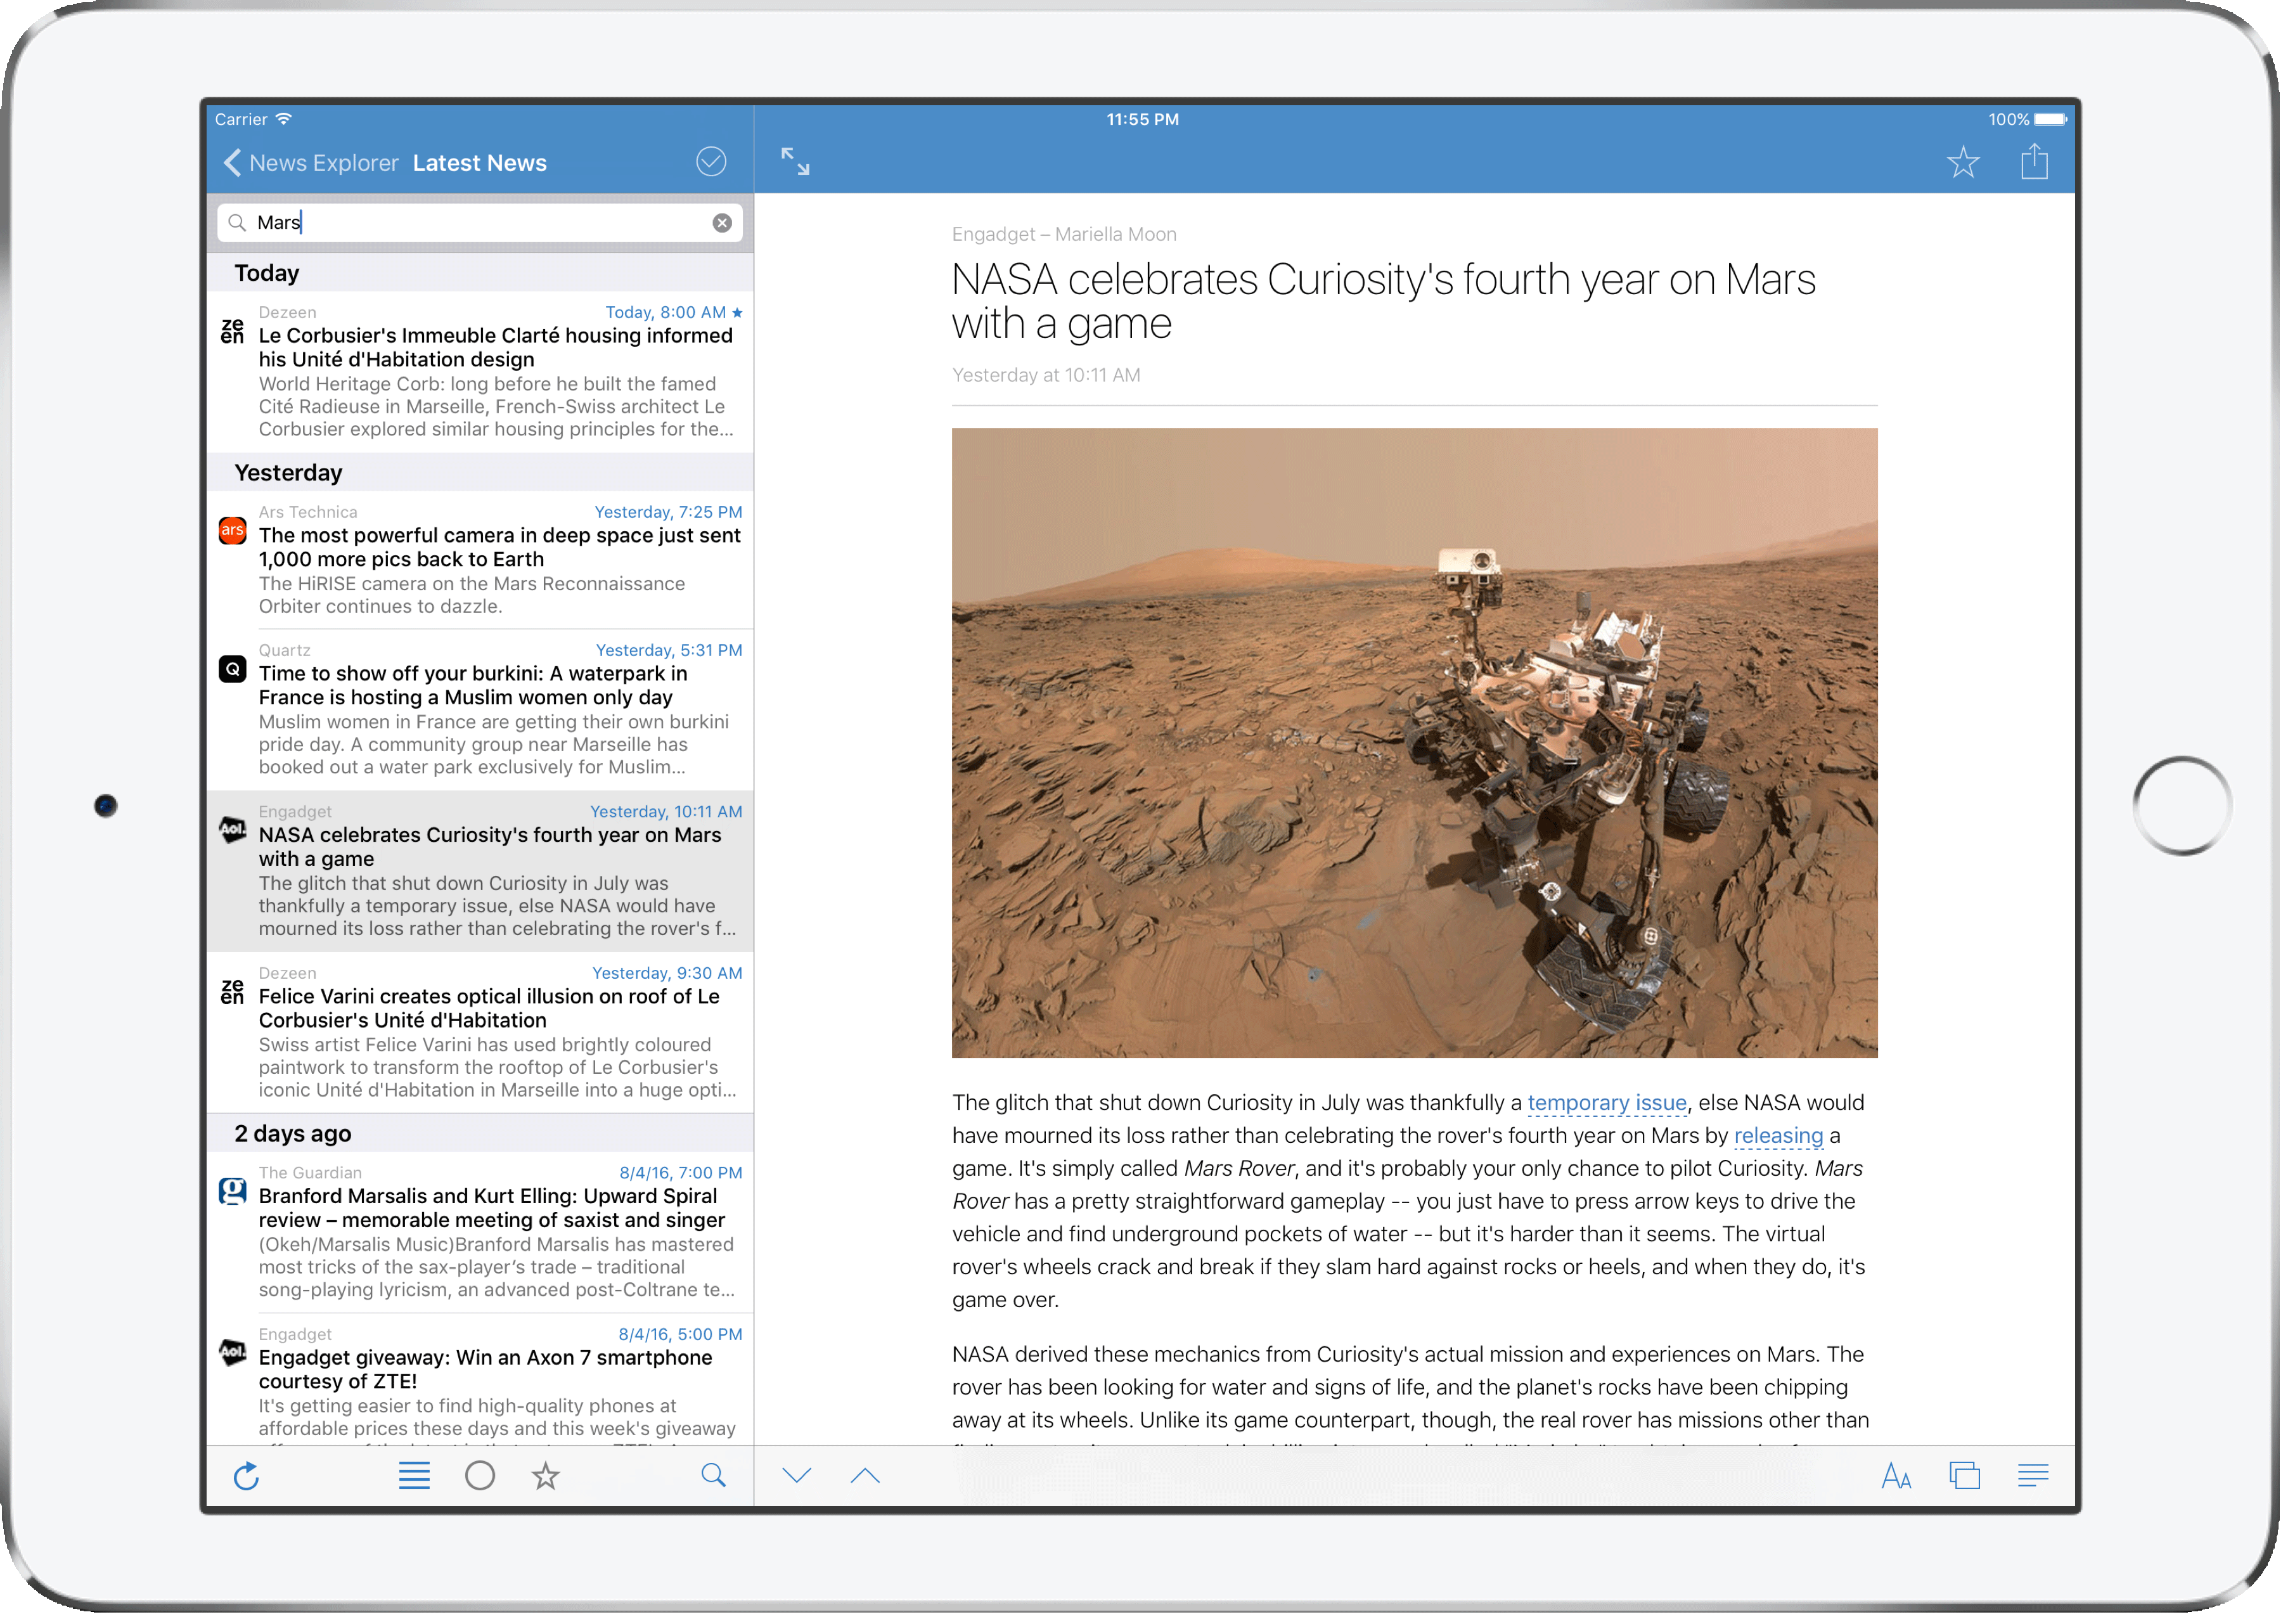 News Explorer Full Text Search